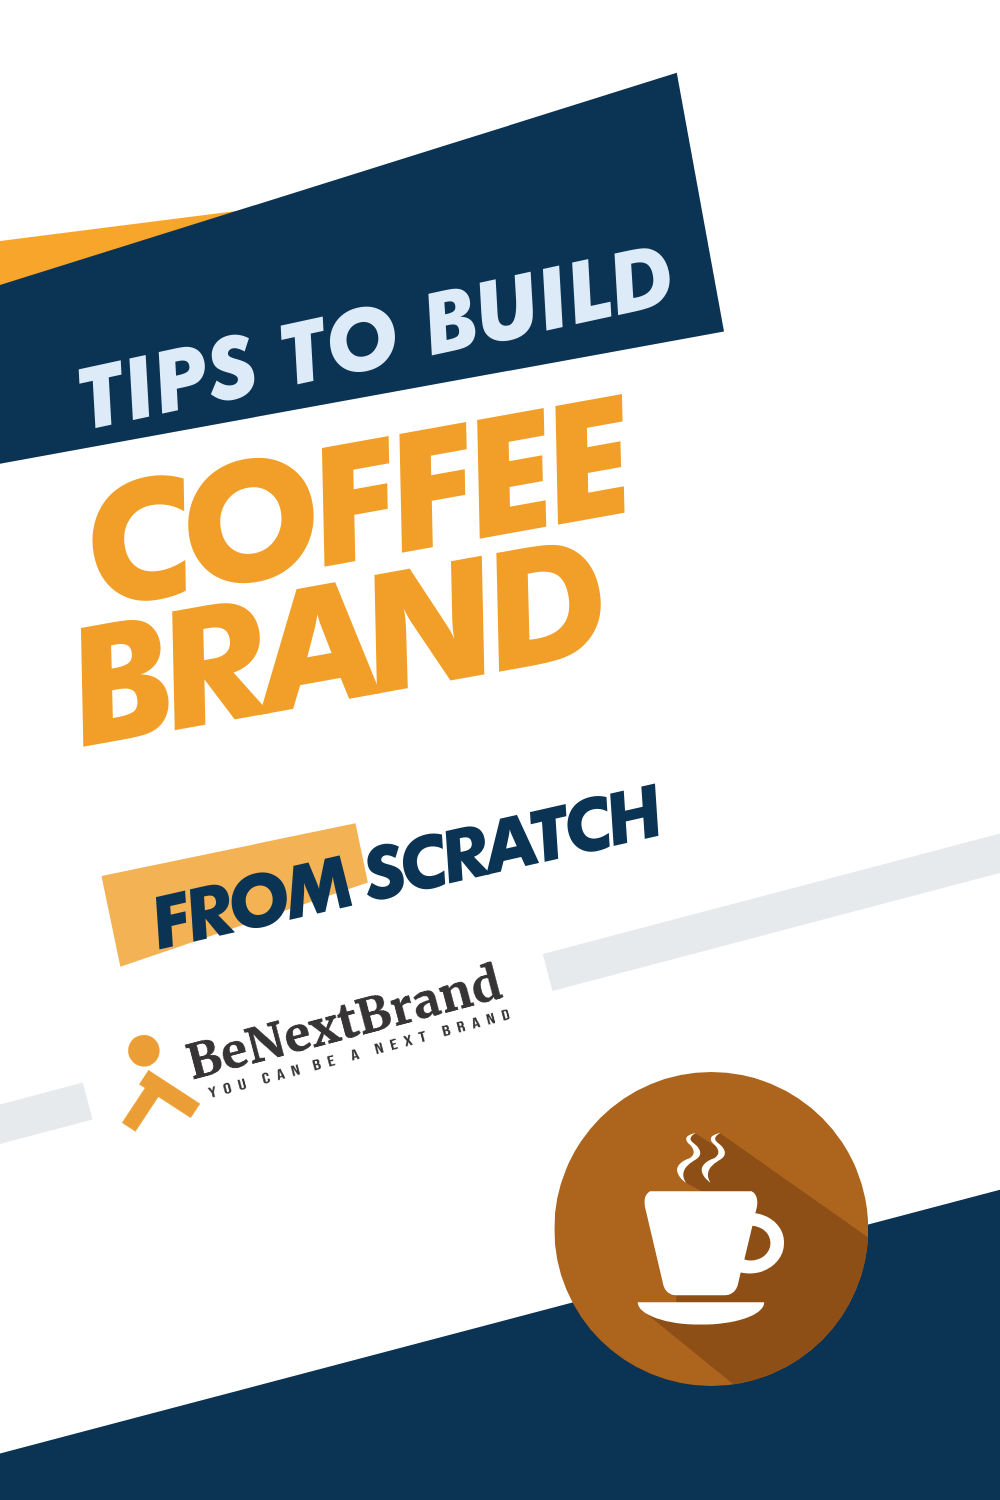 Little did anyone imagine that a 15th century discovered dark brown colored hot beverage in Yemen will be one of the most popular drinks of the world centuries later. #TipsToBuildBrands #MakeBrand #startup #NewBrand #Build